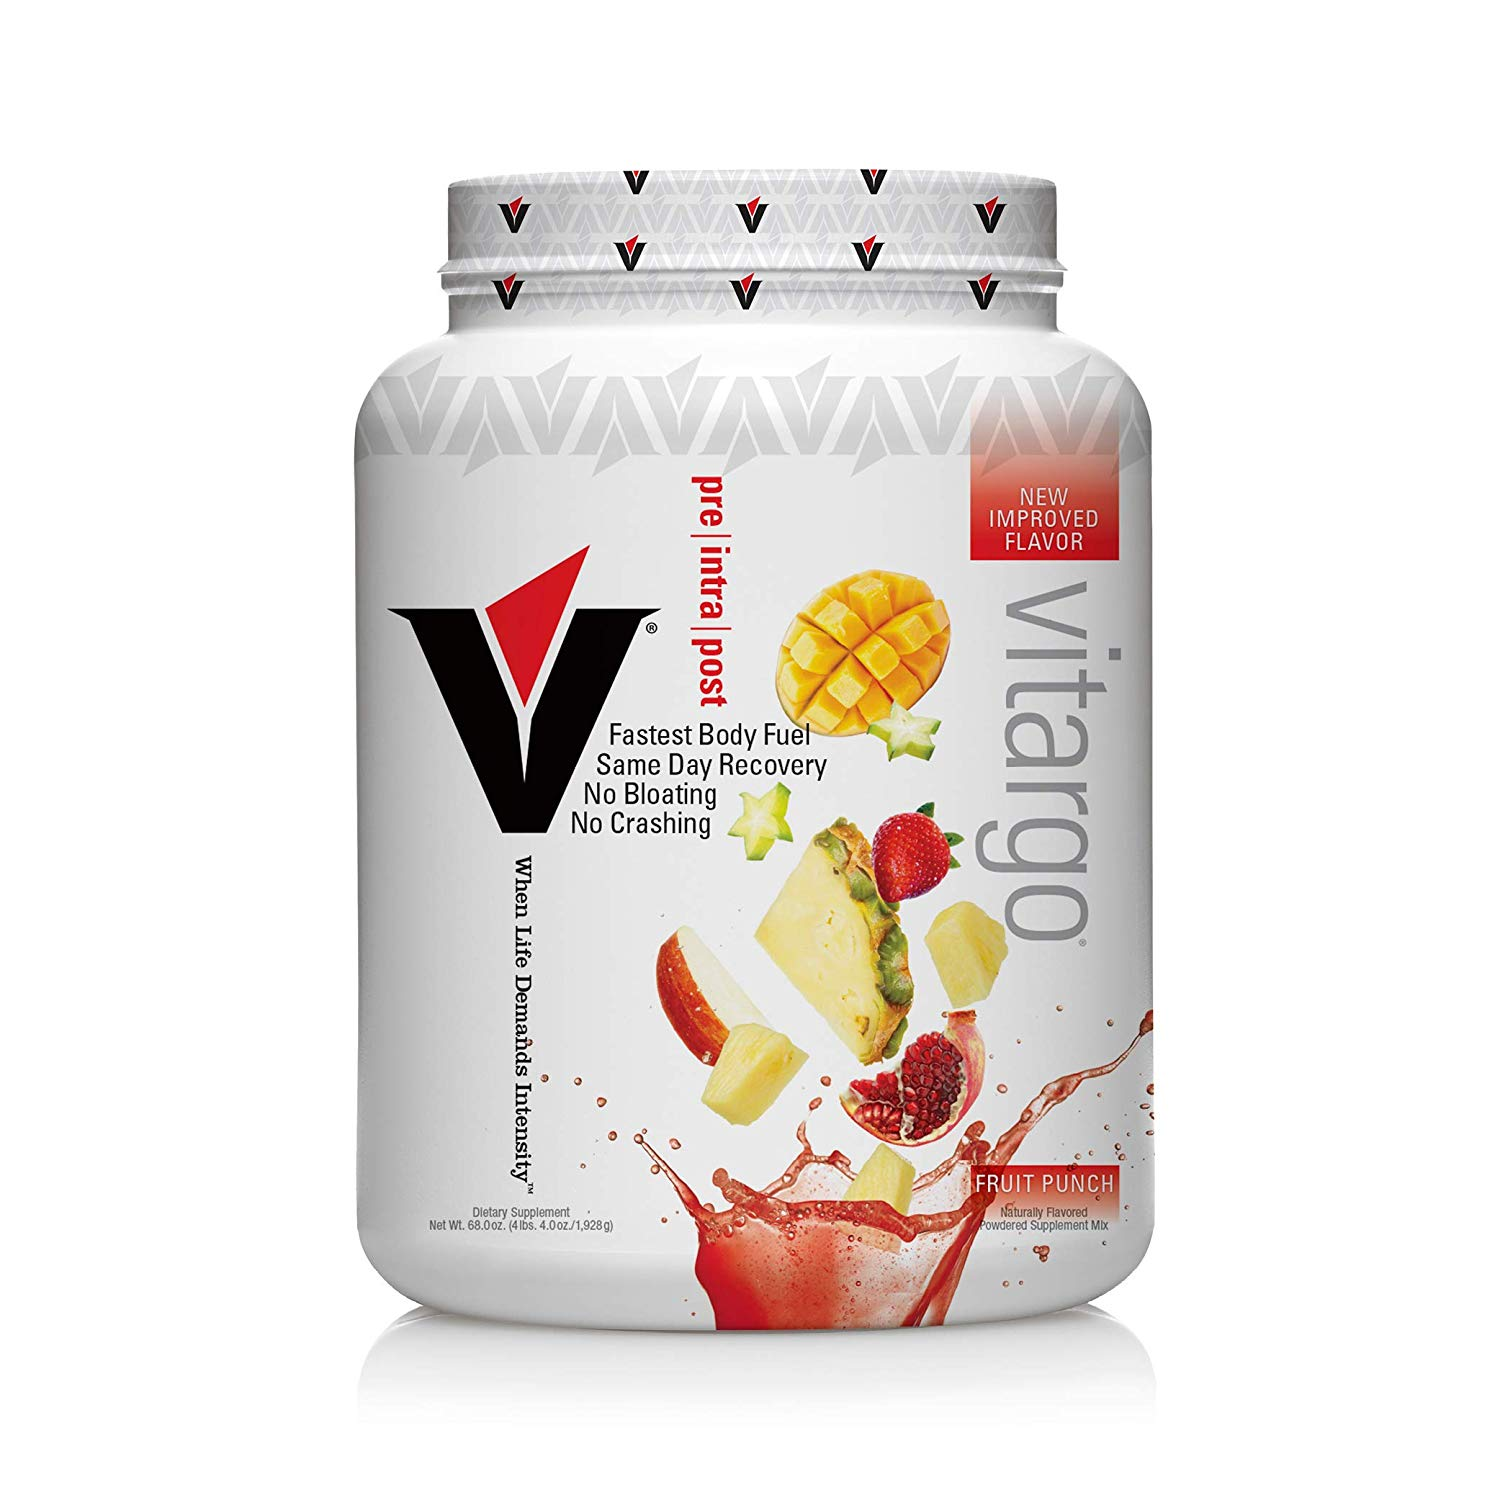 Vitargo Carbohydrate Powder front